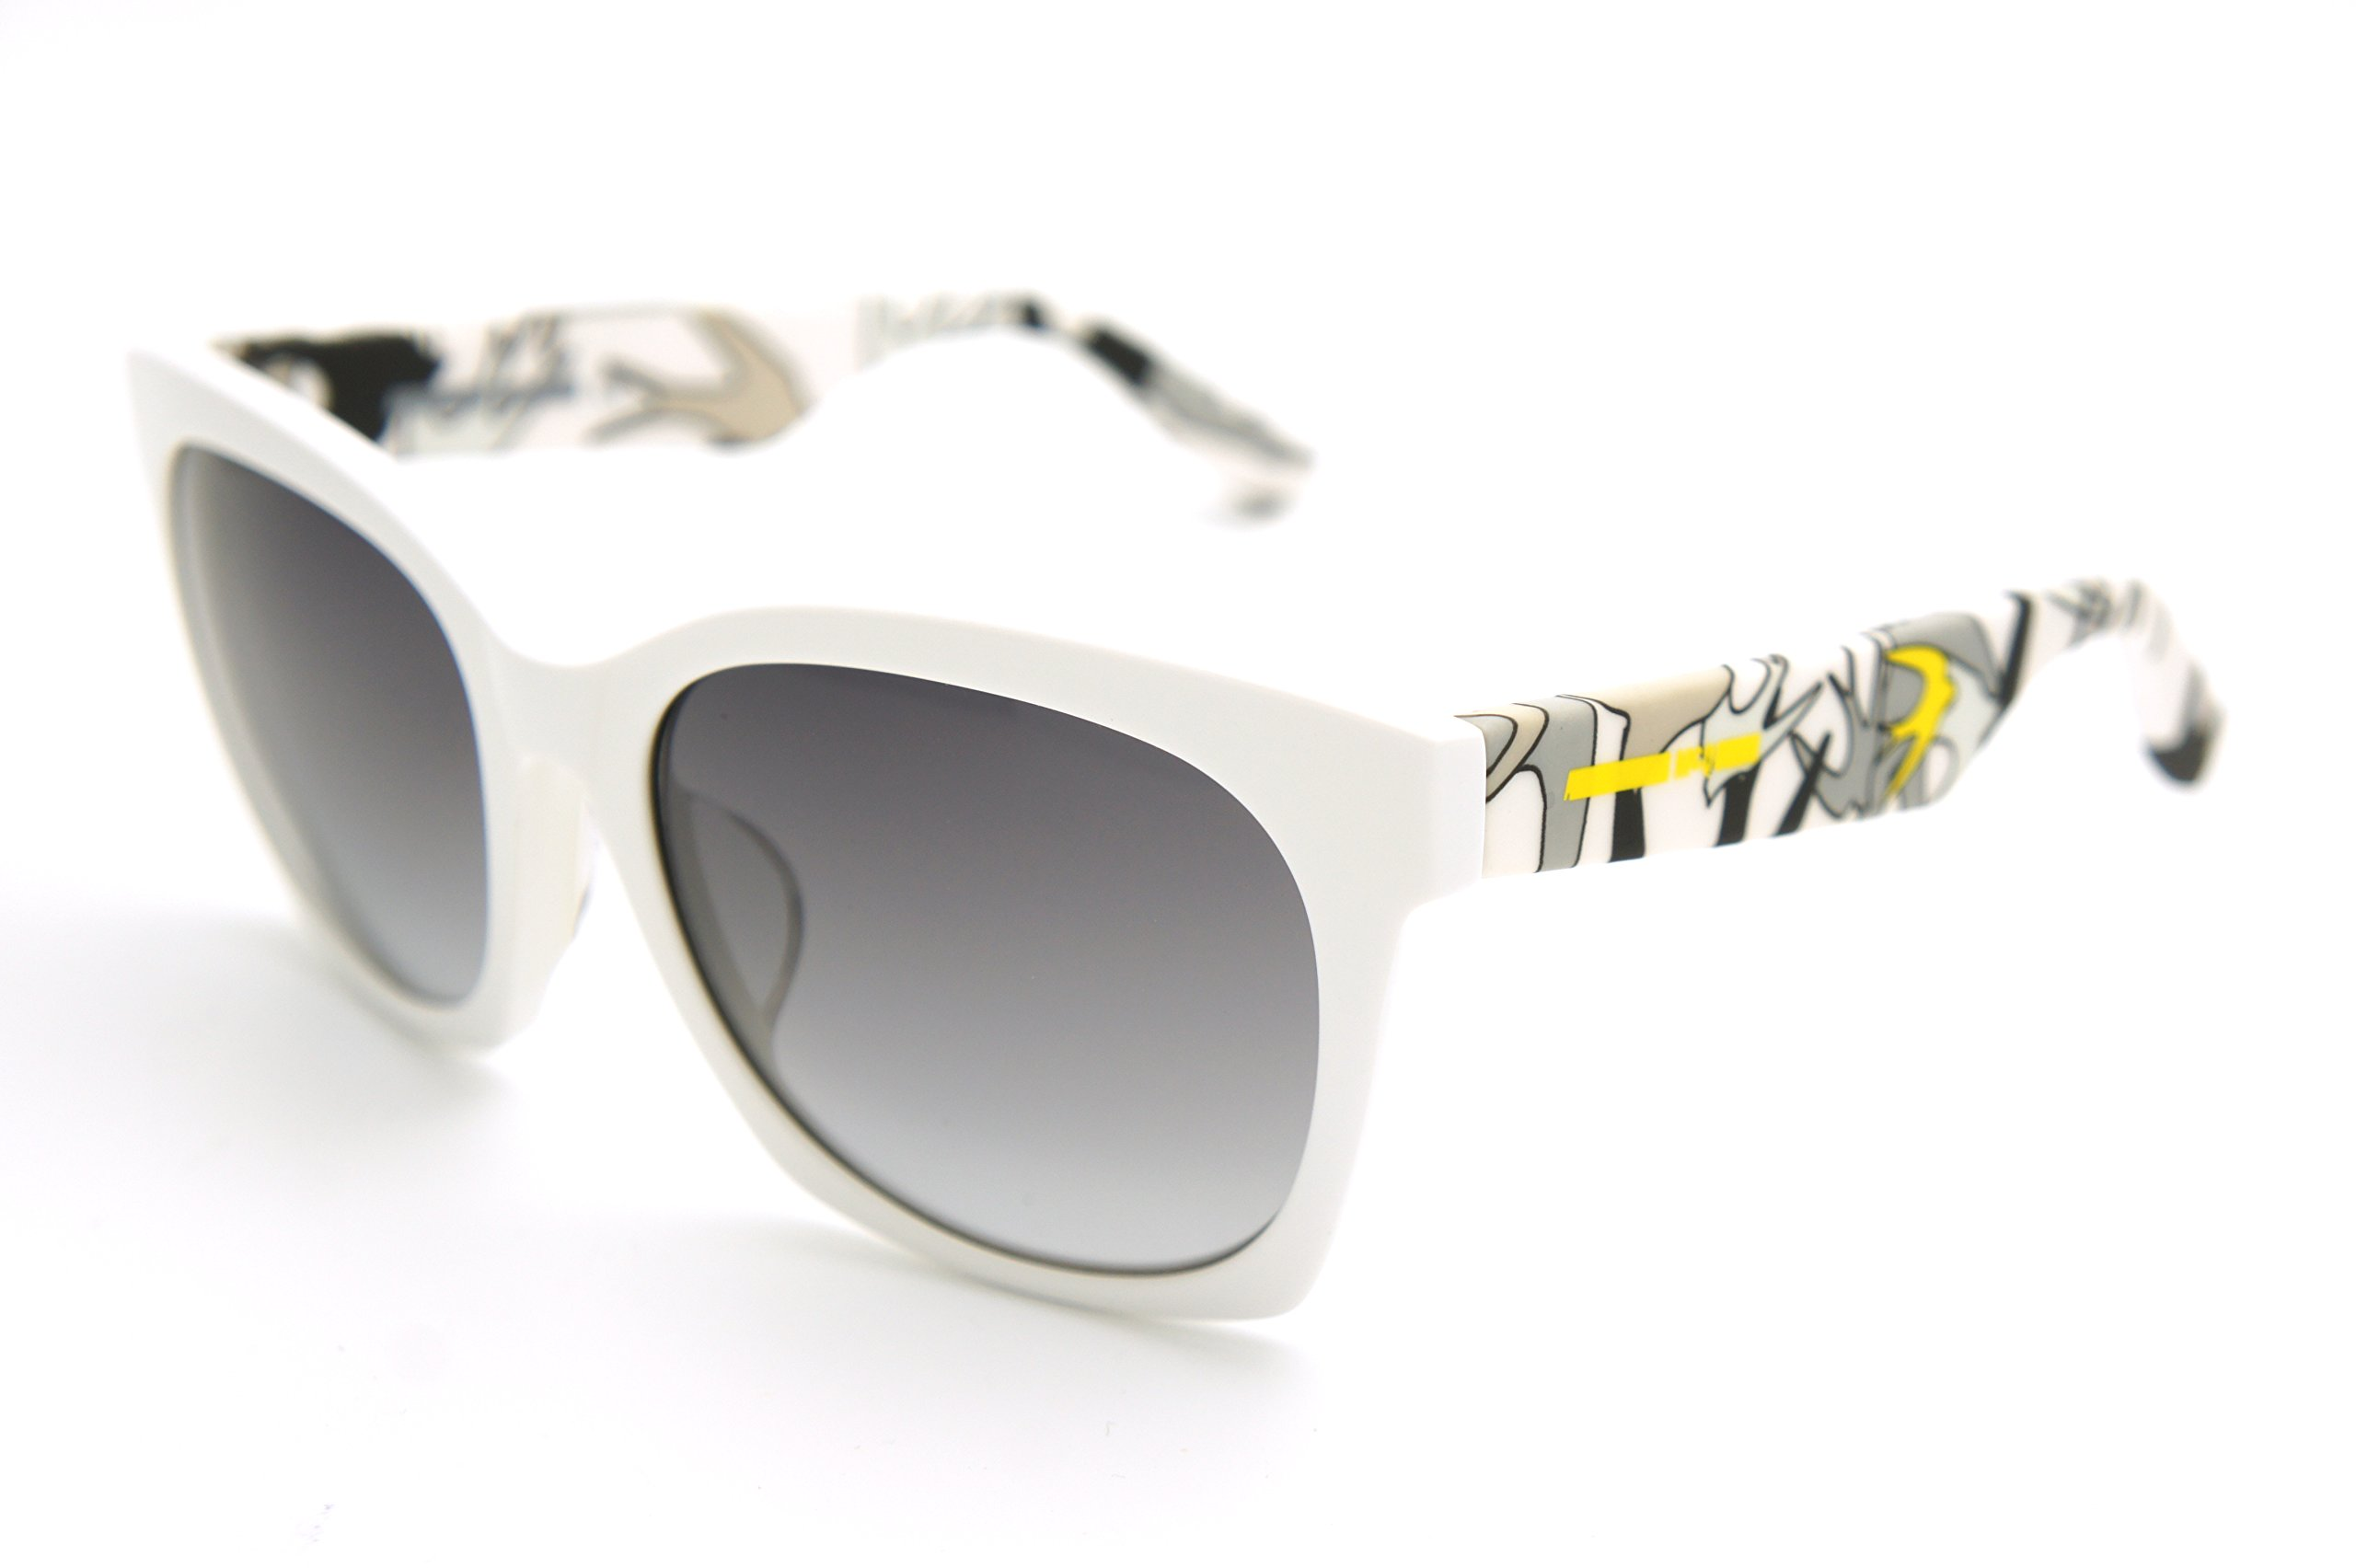 McQ - Alexander McQueen Sunglasses fit bridge 0017SA 0017 MQ0017SA (shiny white / smoke lens, one color) by MCQ